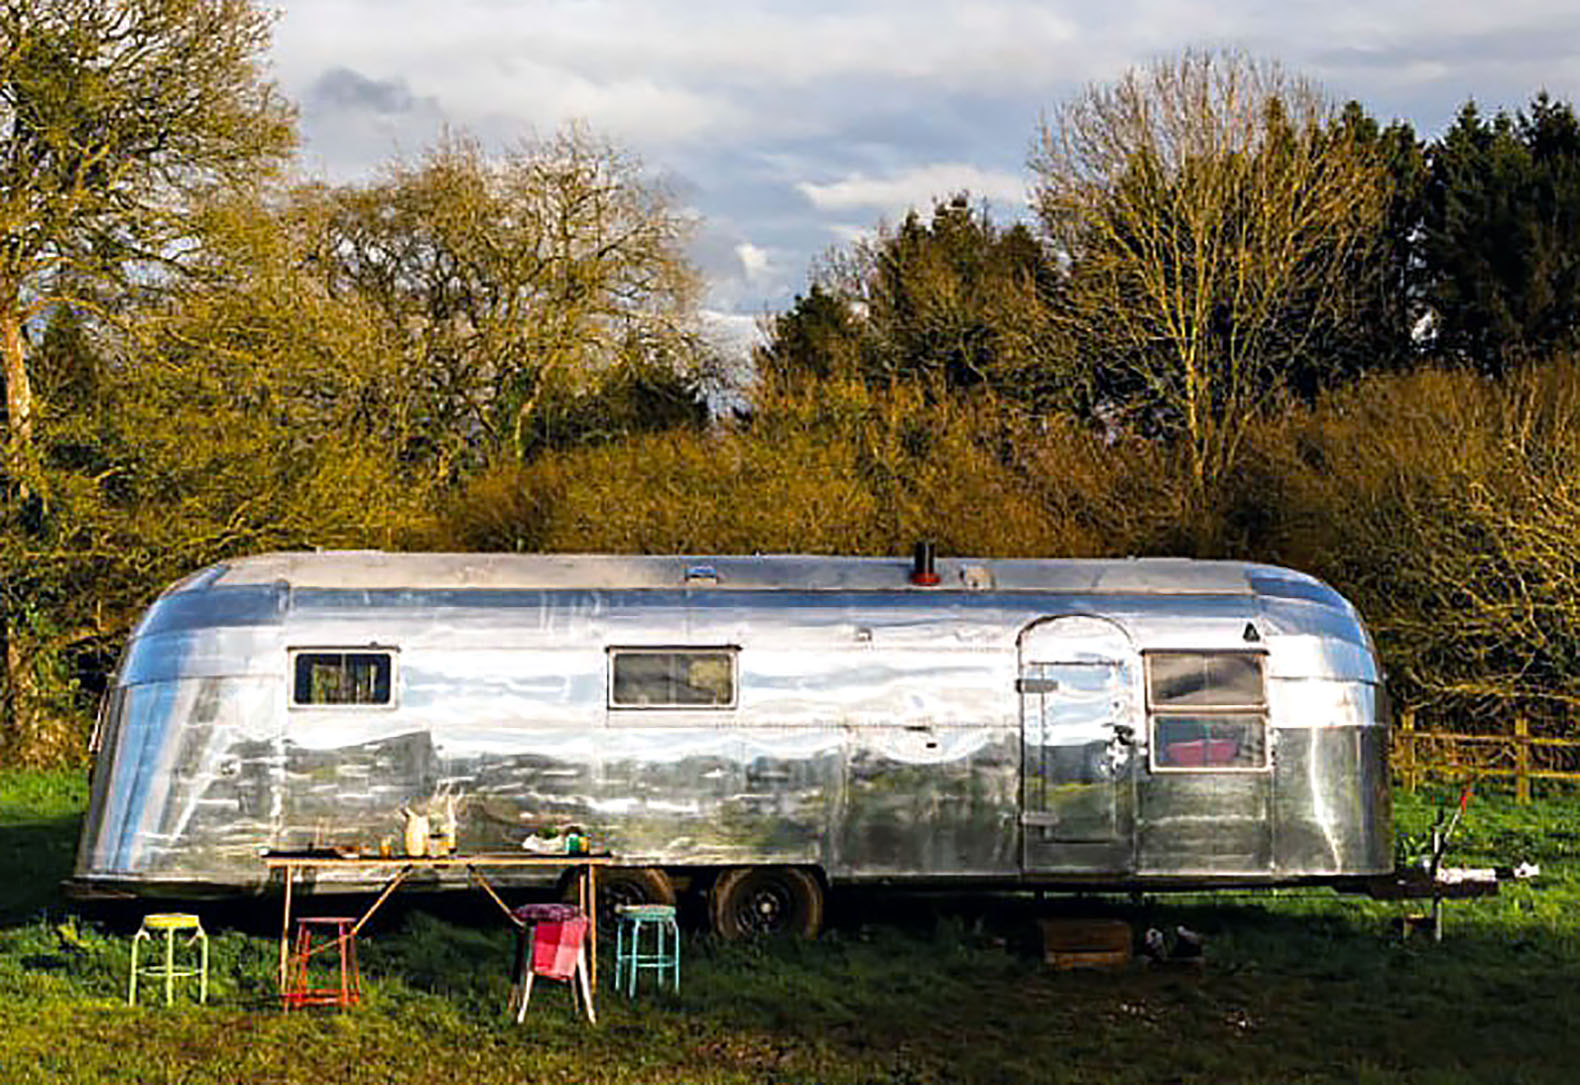 What airstream trailers vintage